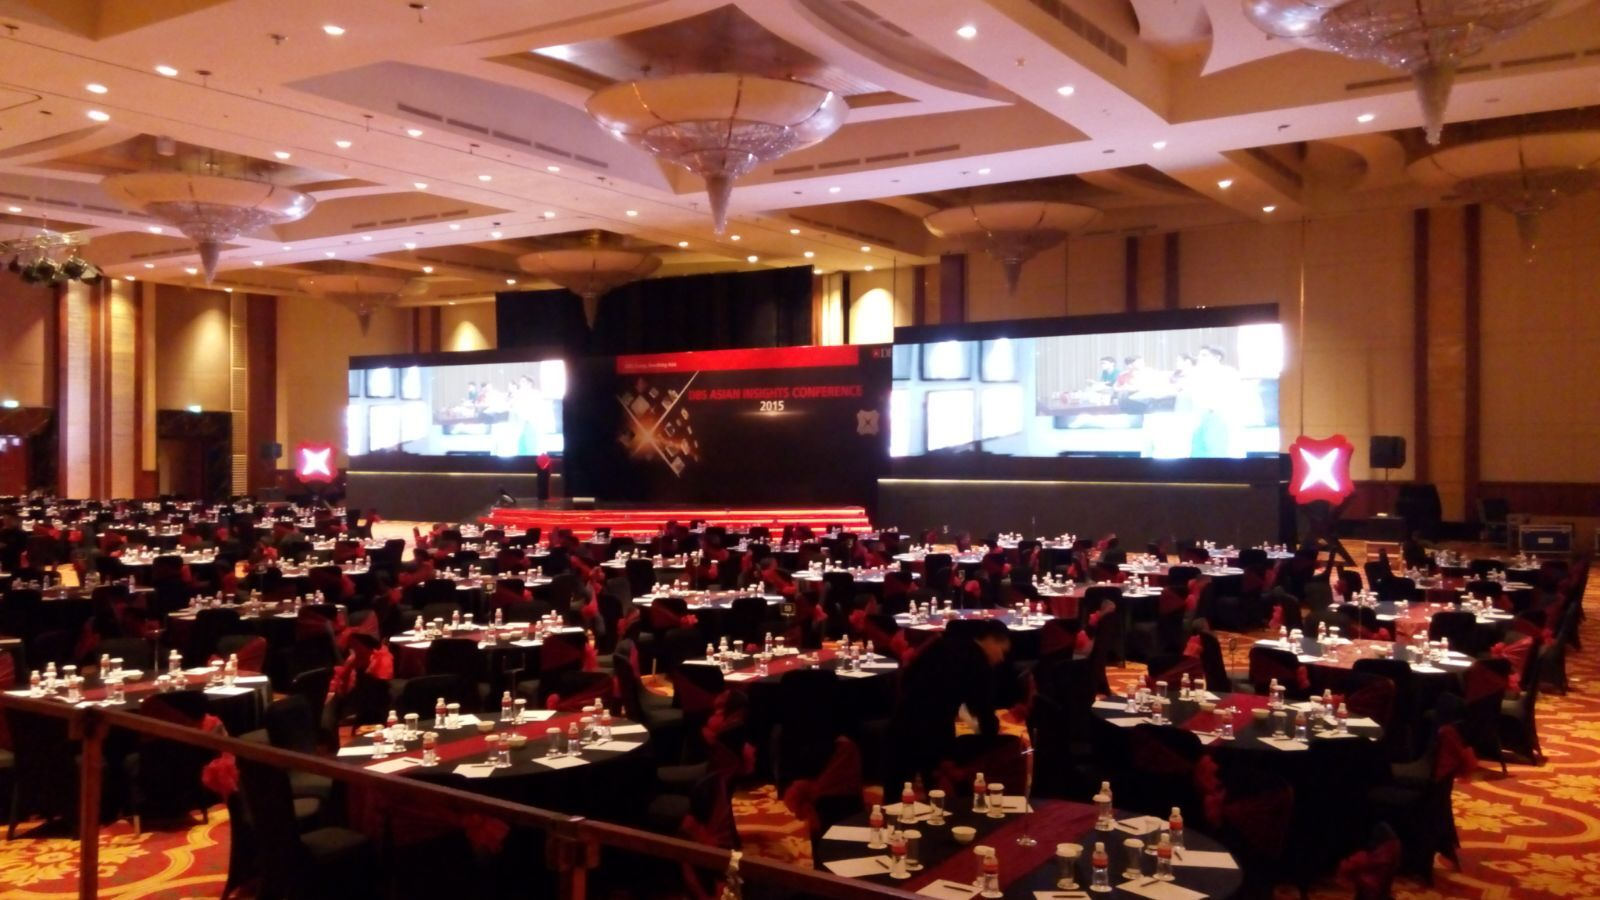 Utile3, Lenovo Event,Indonesia,2015